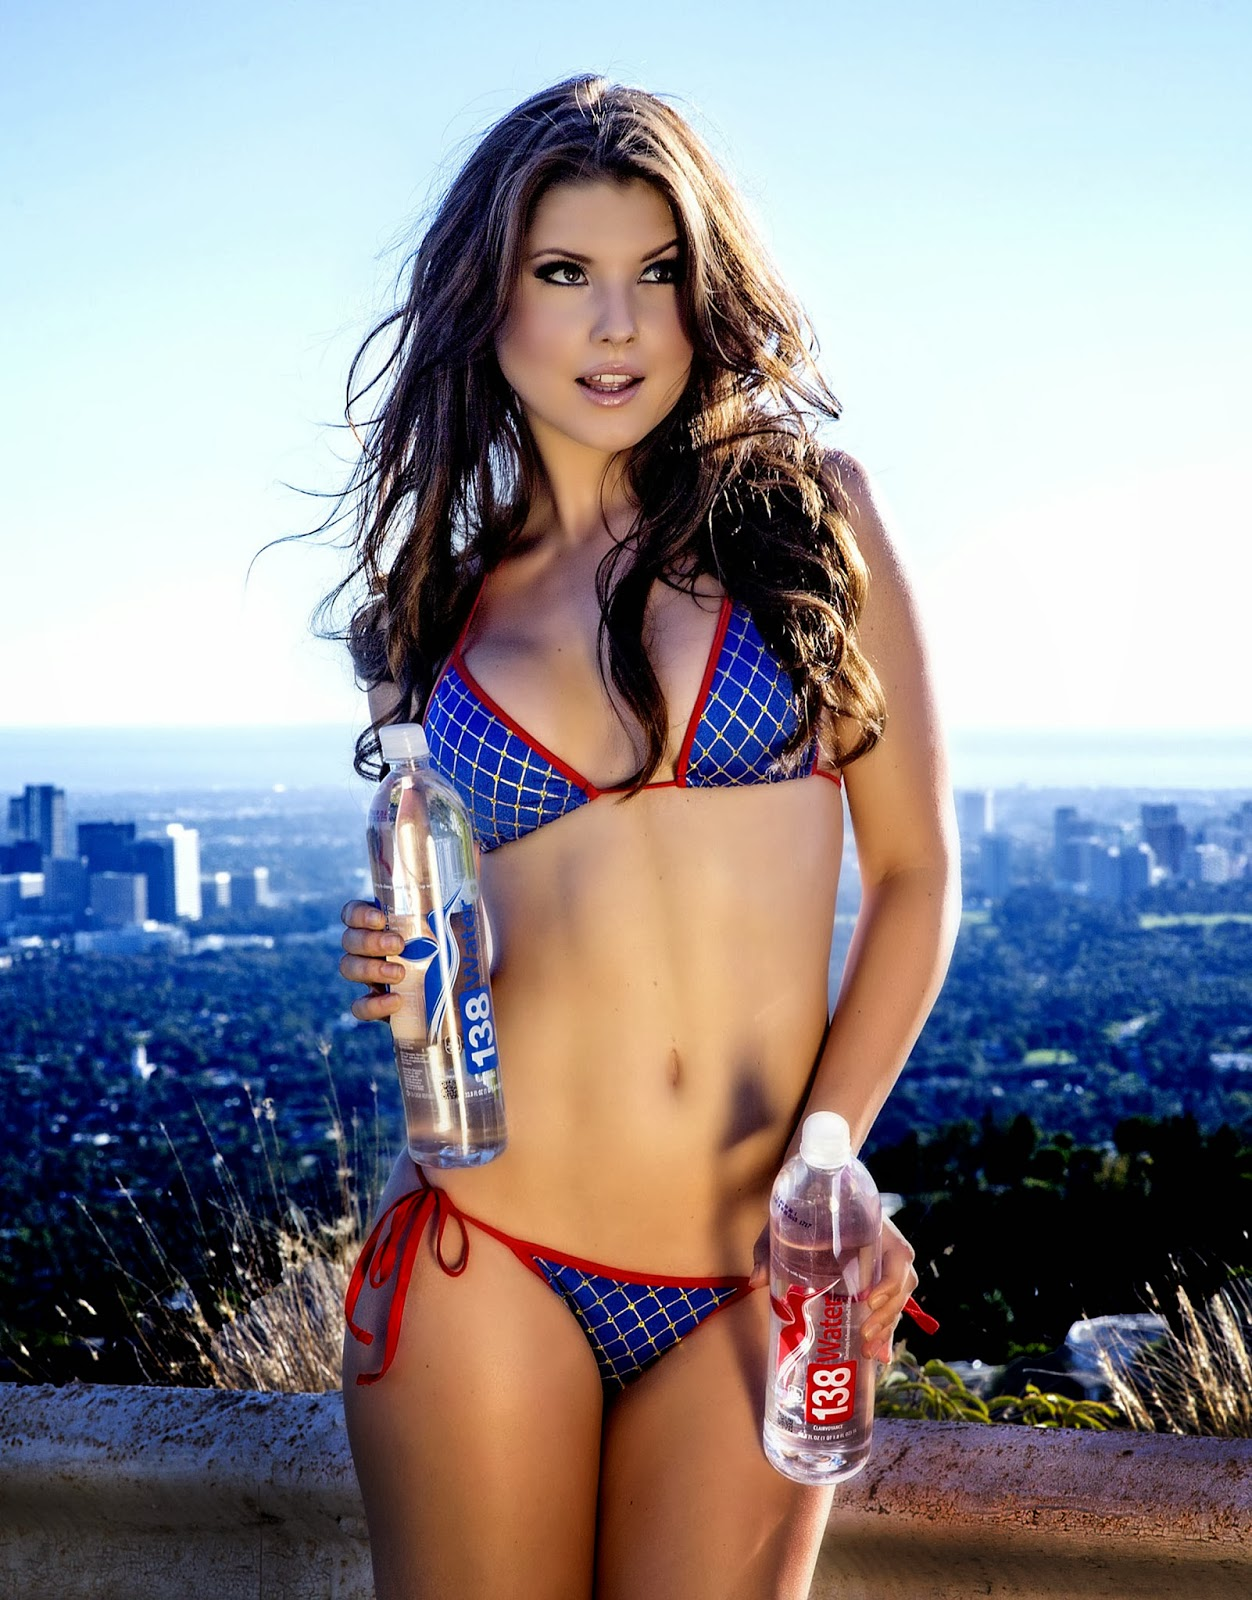 Amanda Cerny Bikini Pictures Are Wickedly Hot - Magazine ...